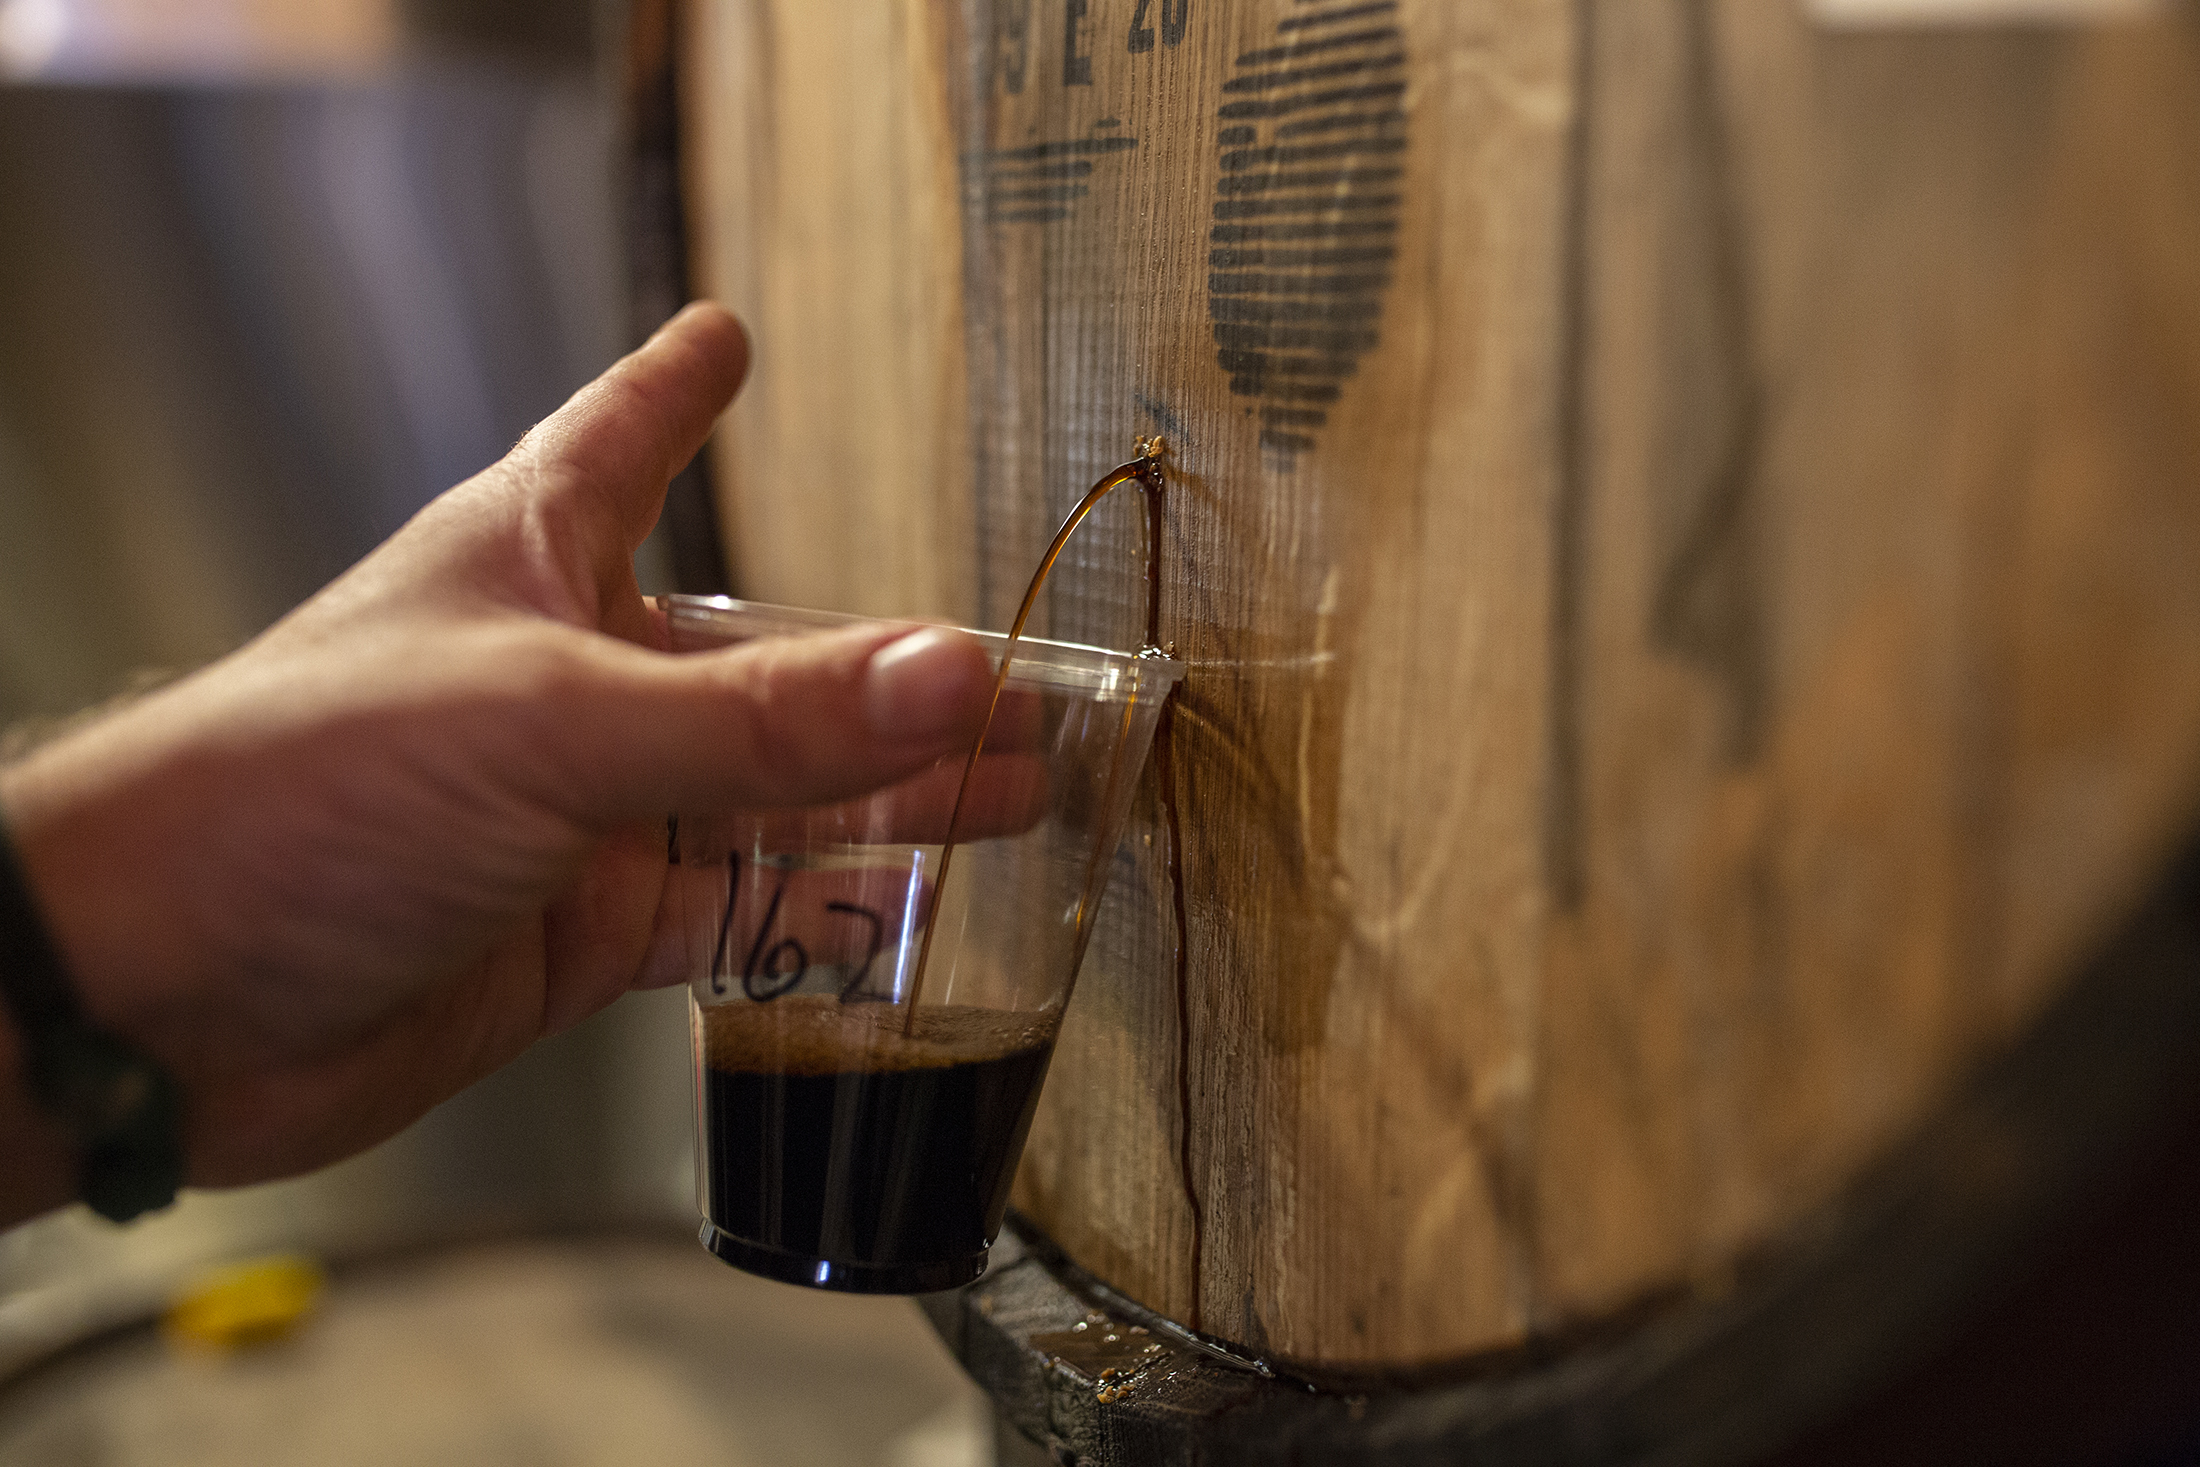 Samples are taken directly from barrels